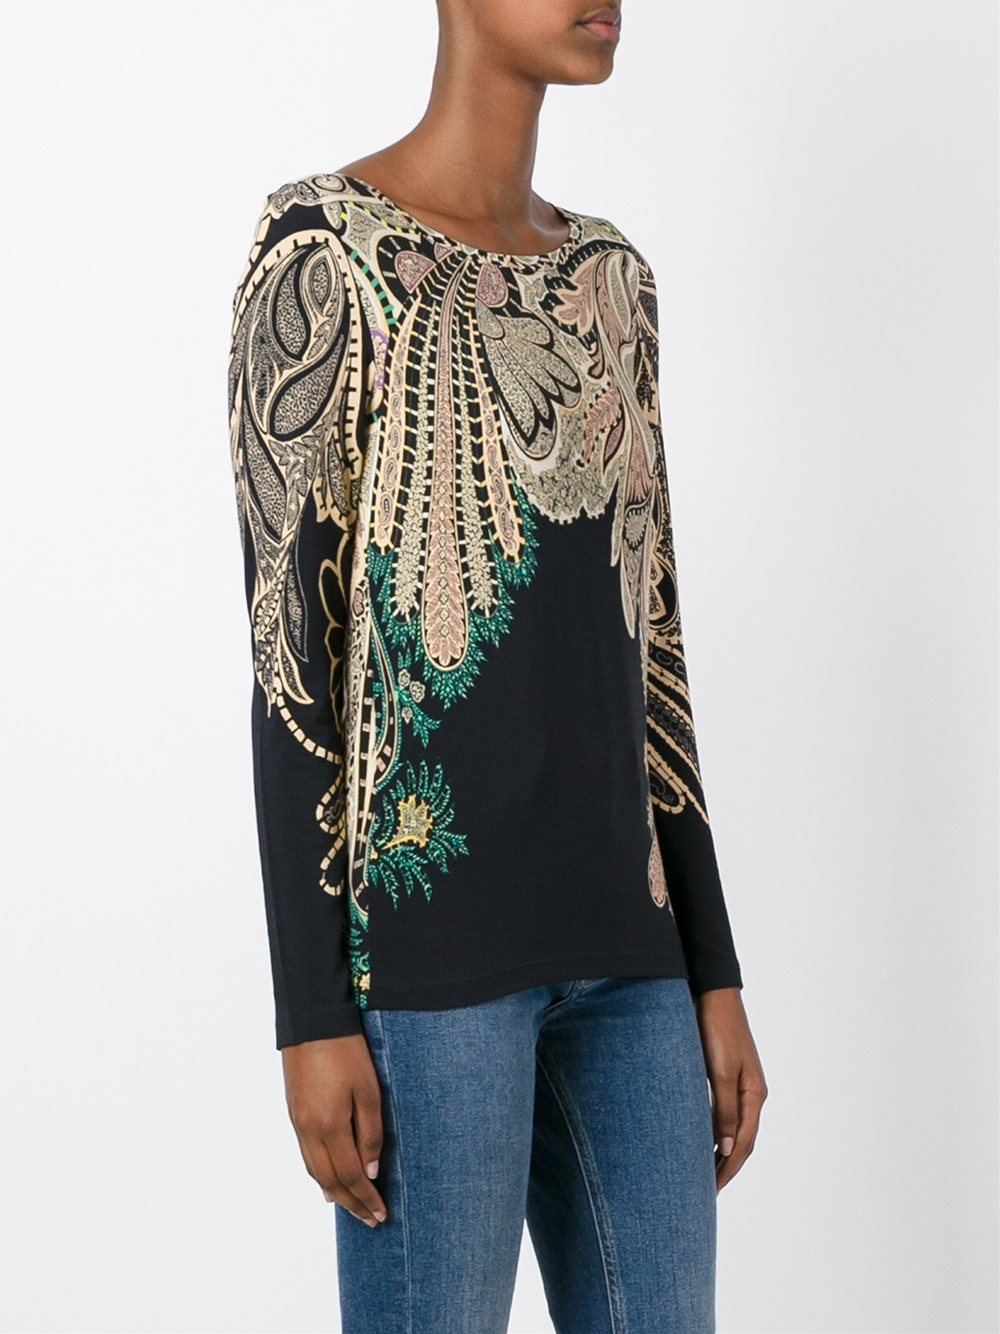 Etro Paisley Print T Shirt In Black Lyst